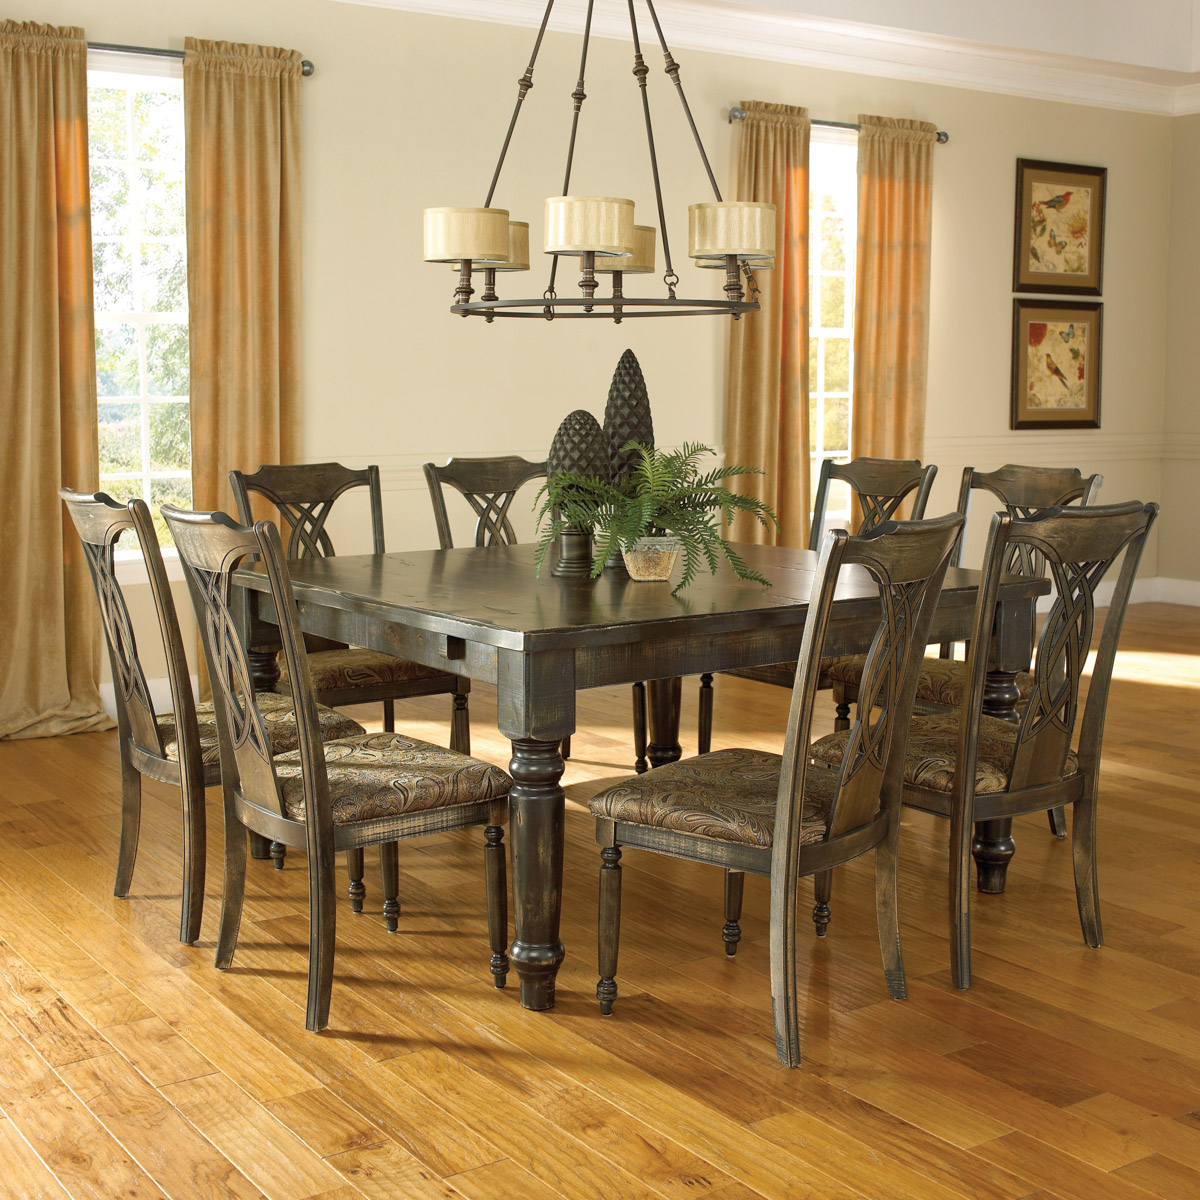 8 chair dining table set beanless bag distressed room | canadel champlain collection